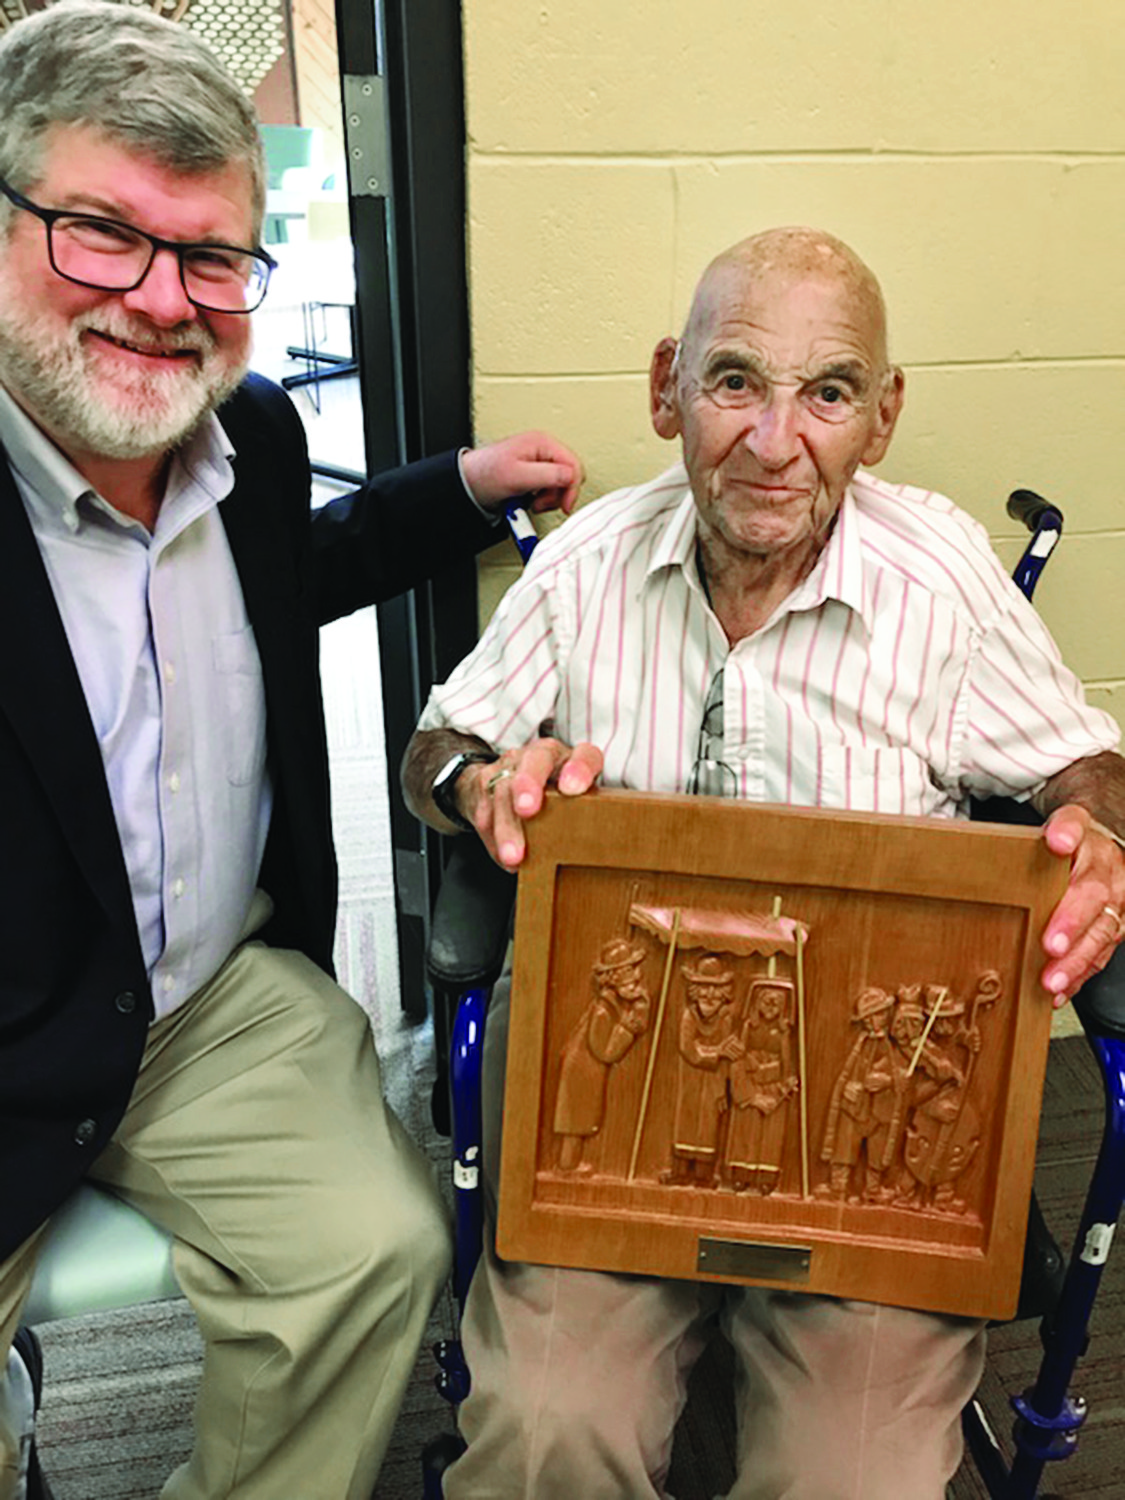 Sam Nelson holds his hand-carved relief of a 19th century Jewish wedding.